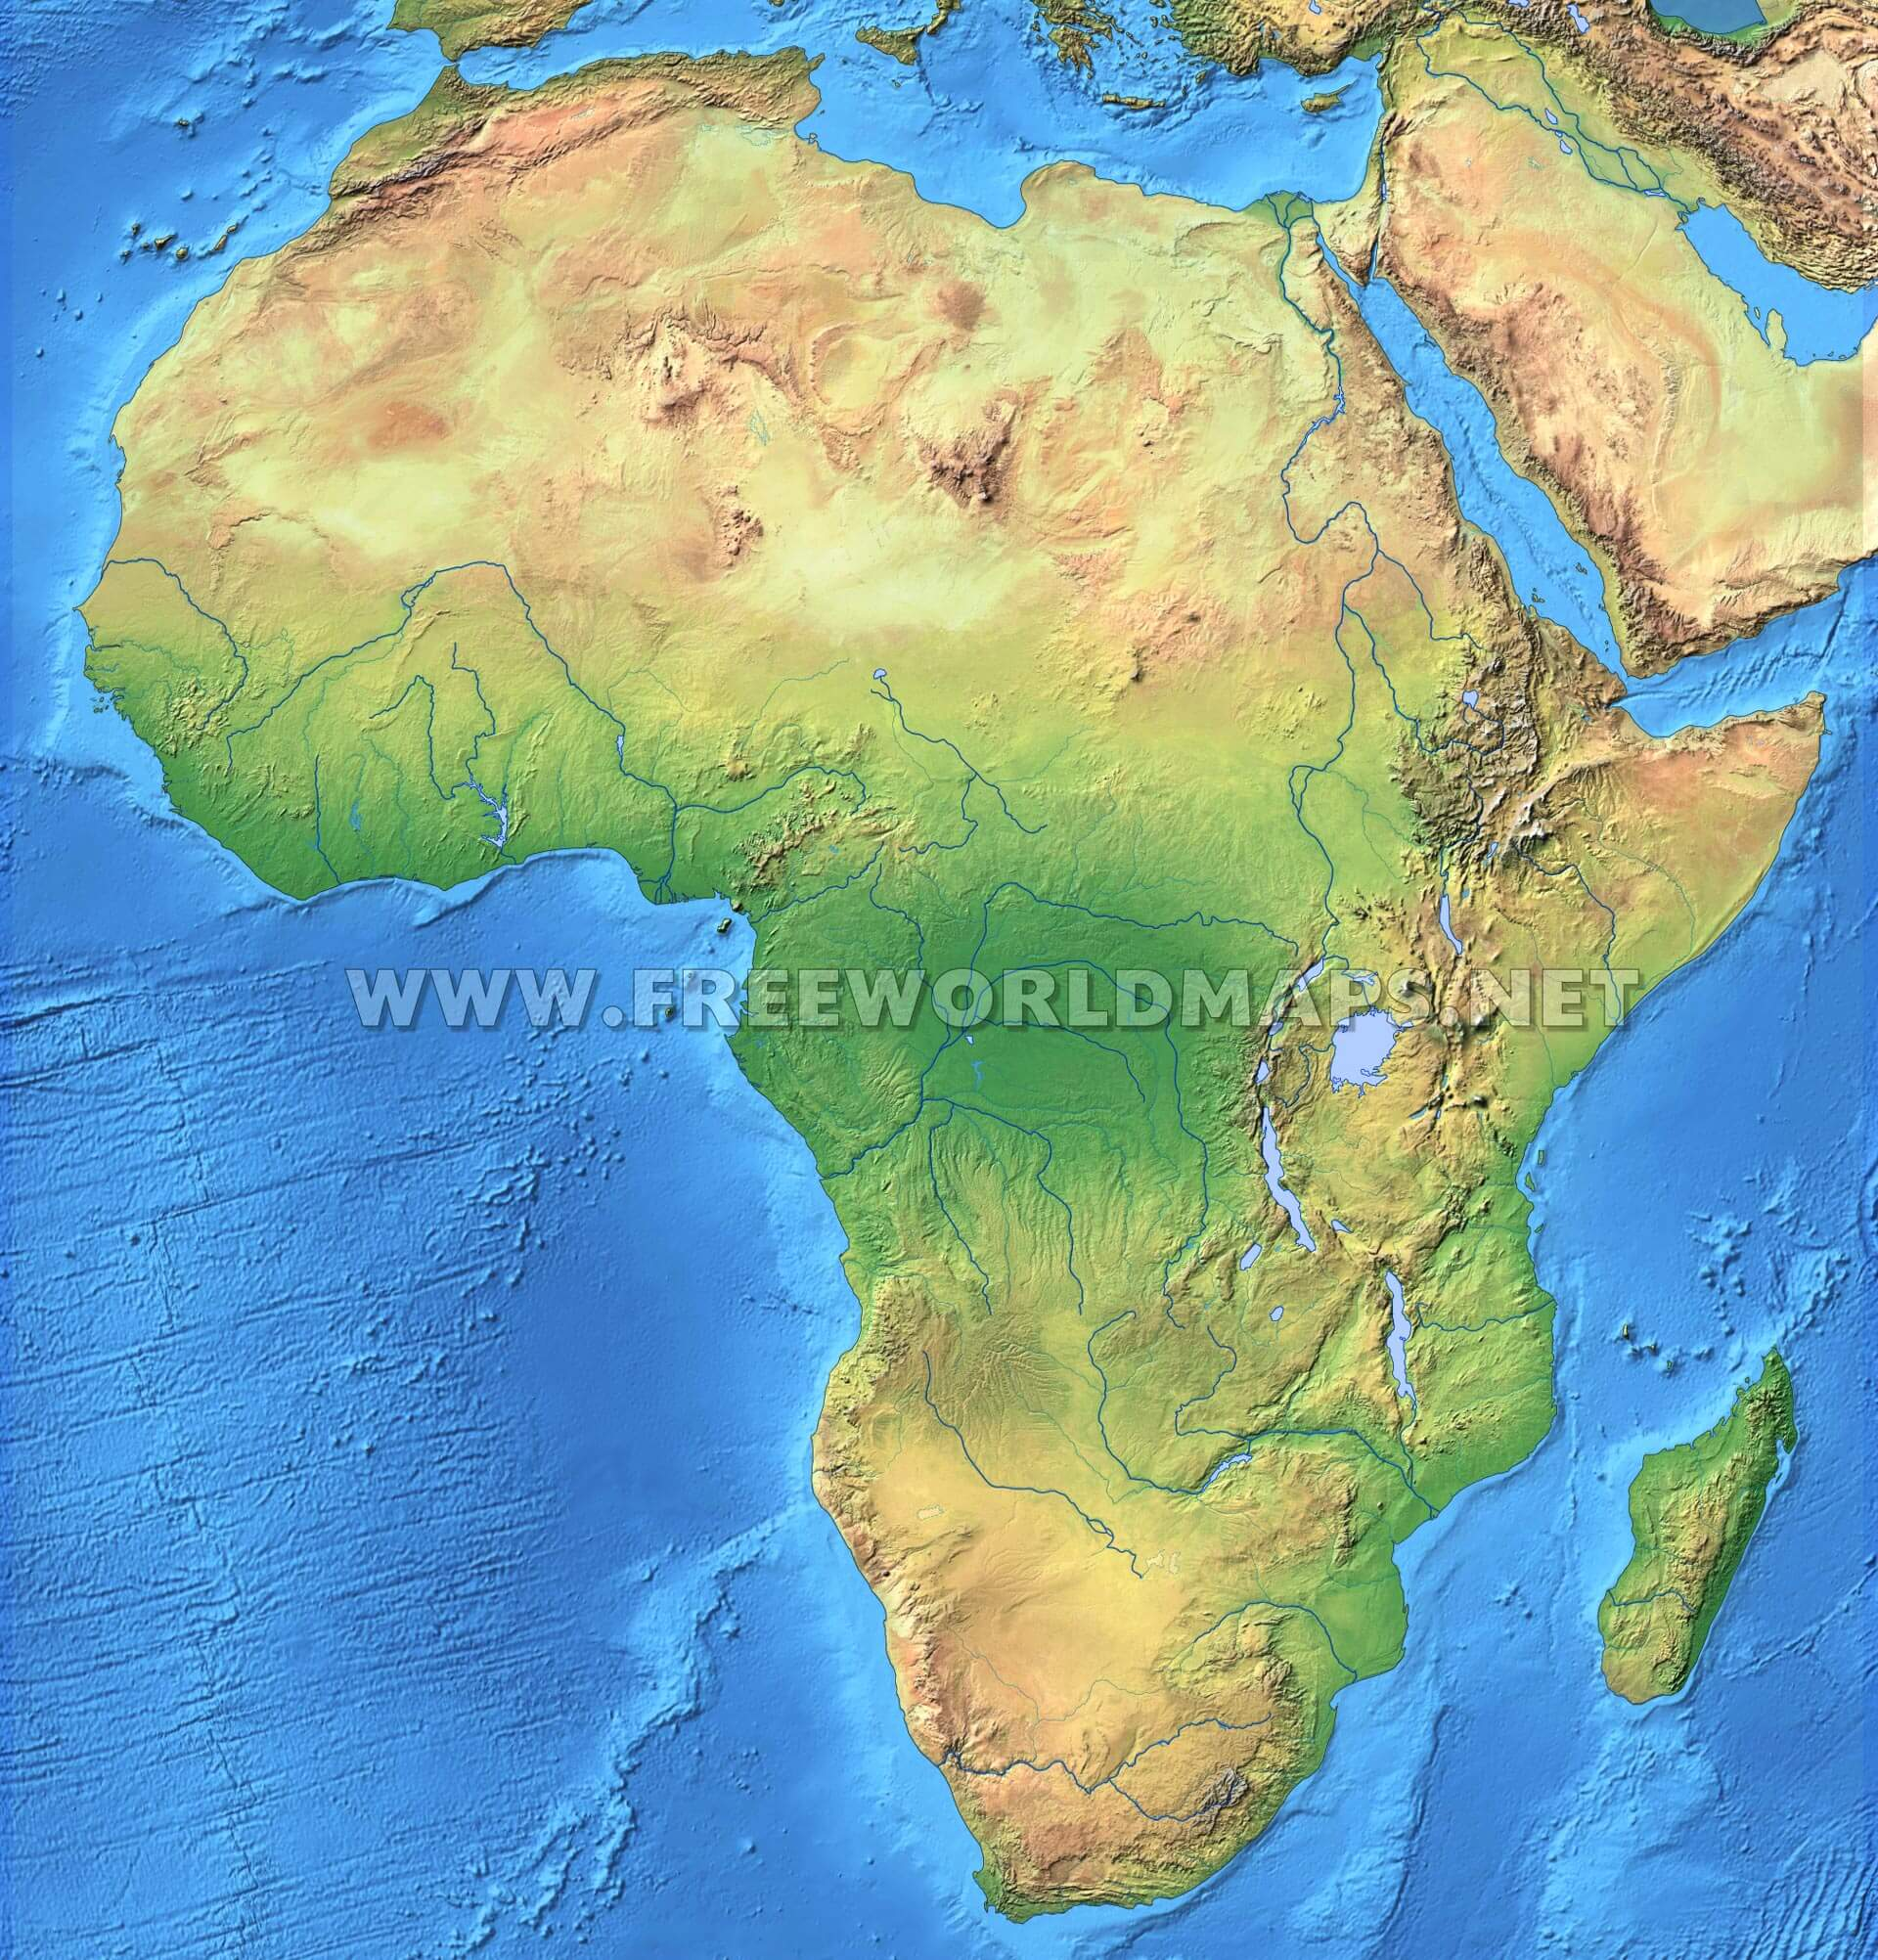 Africa Physical Map – Freeworldmaps.net